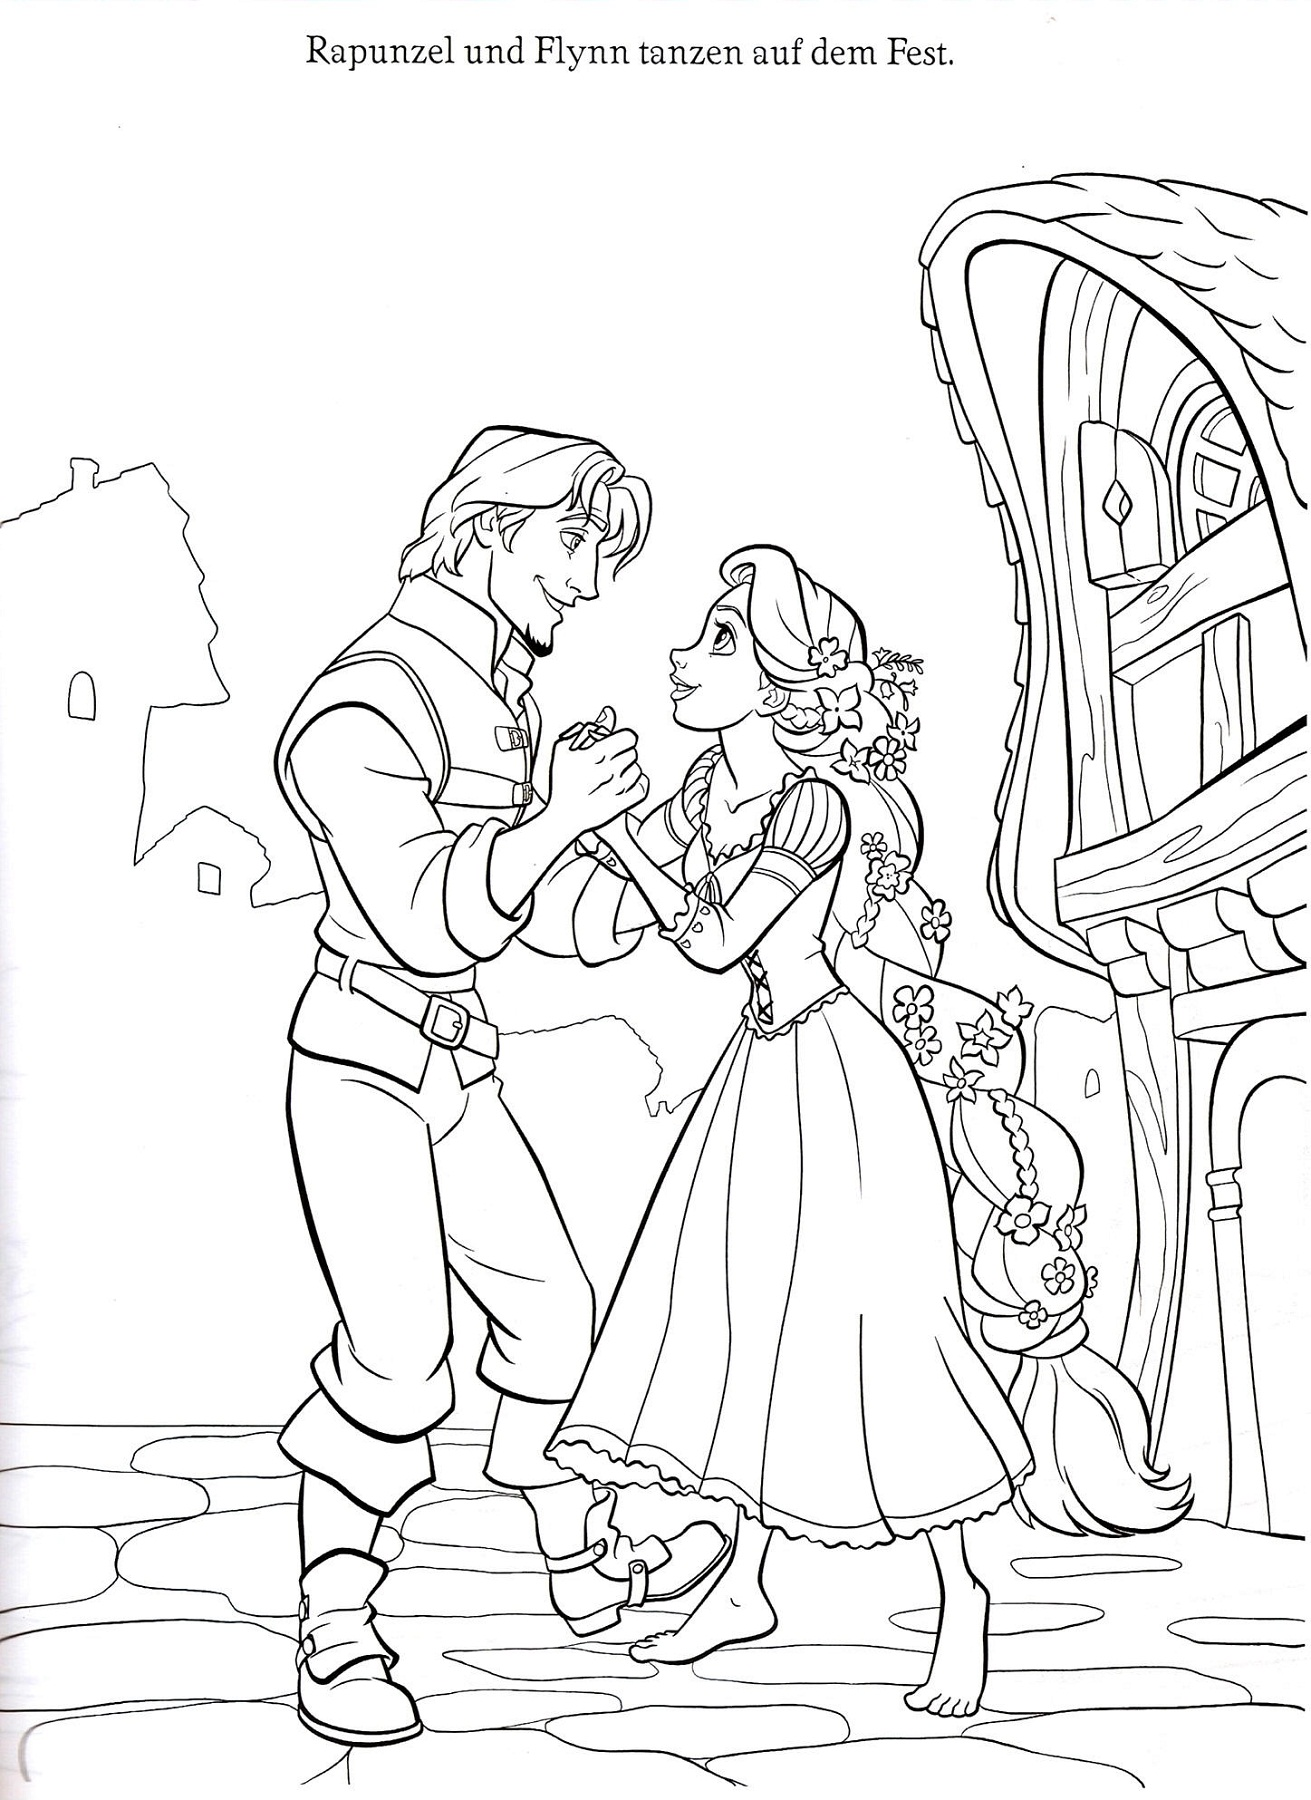 rapunzel color pages printable - Rapunzel Coloring Pages To Print